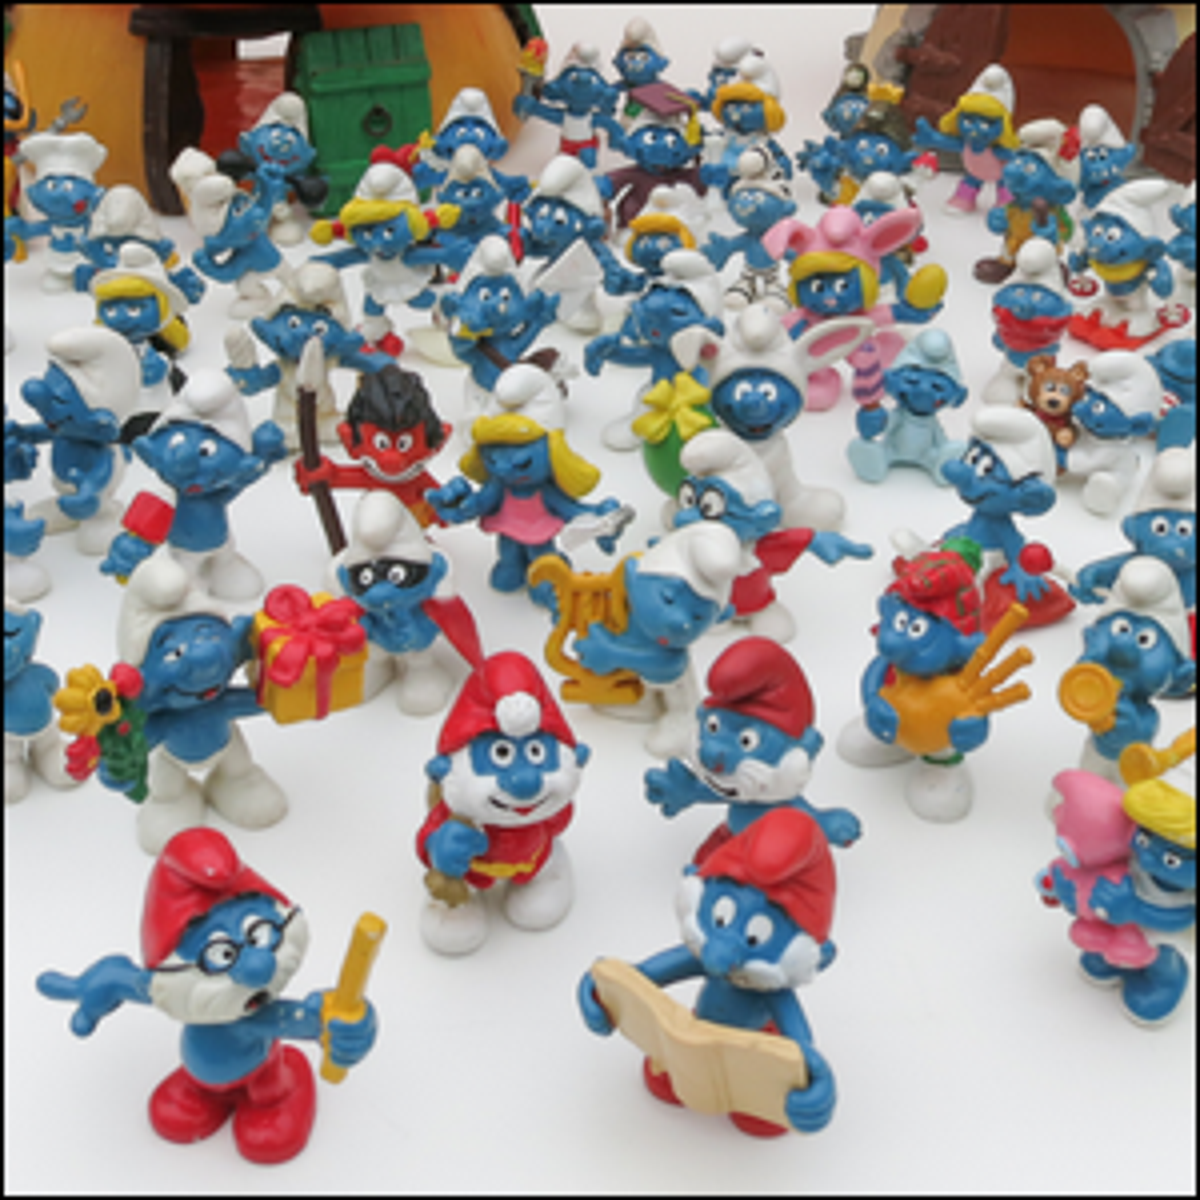 A group of Smurf figurines.